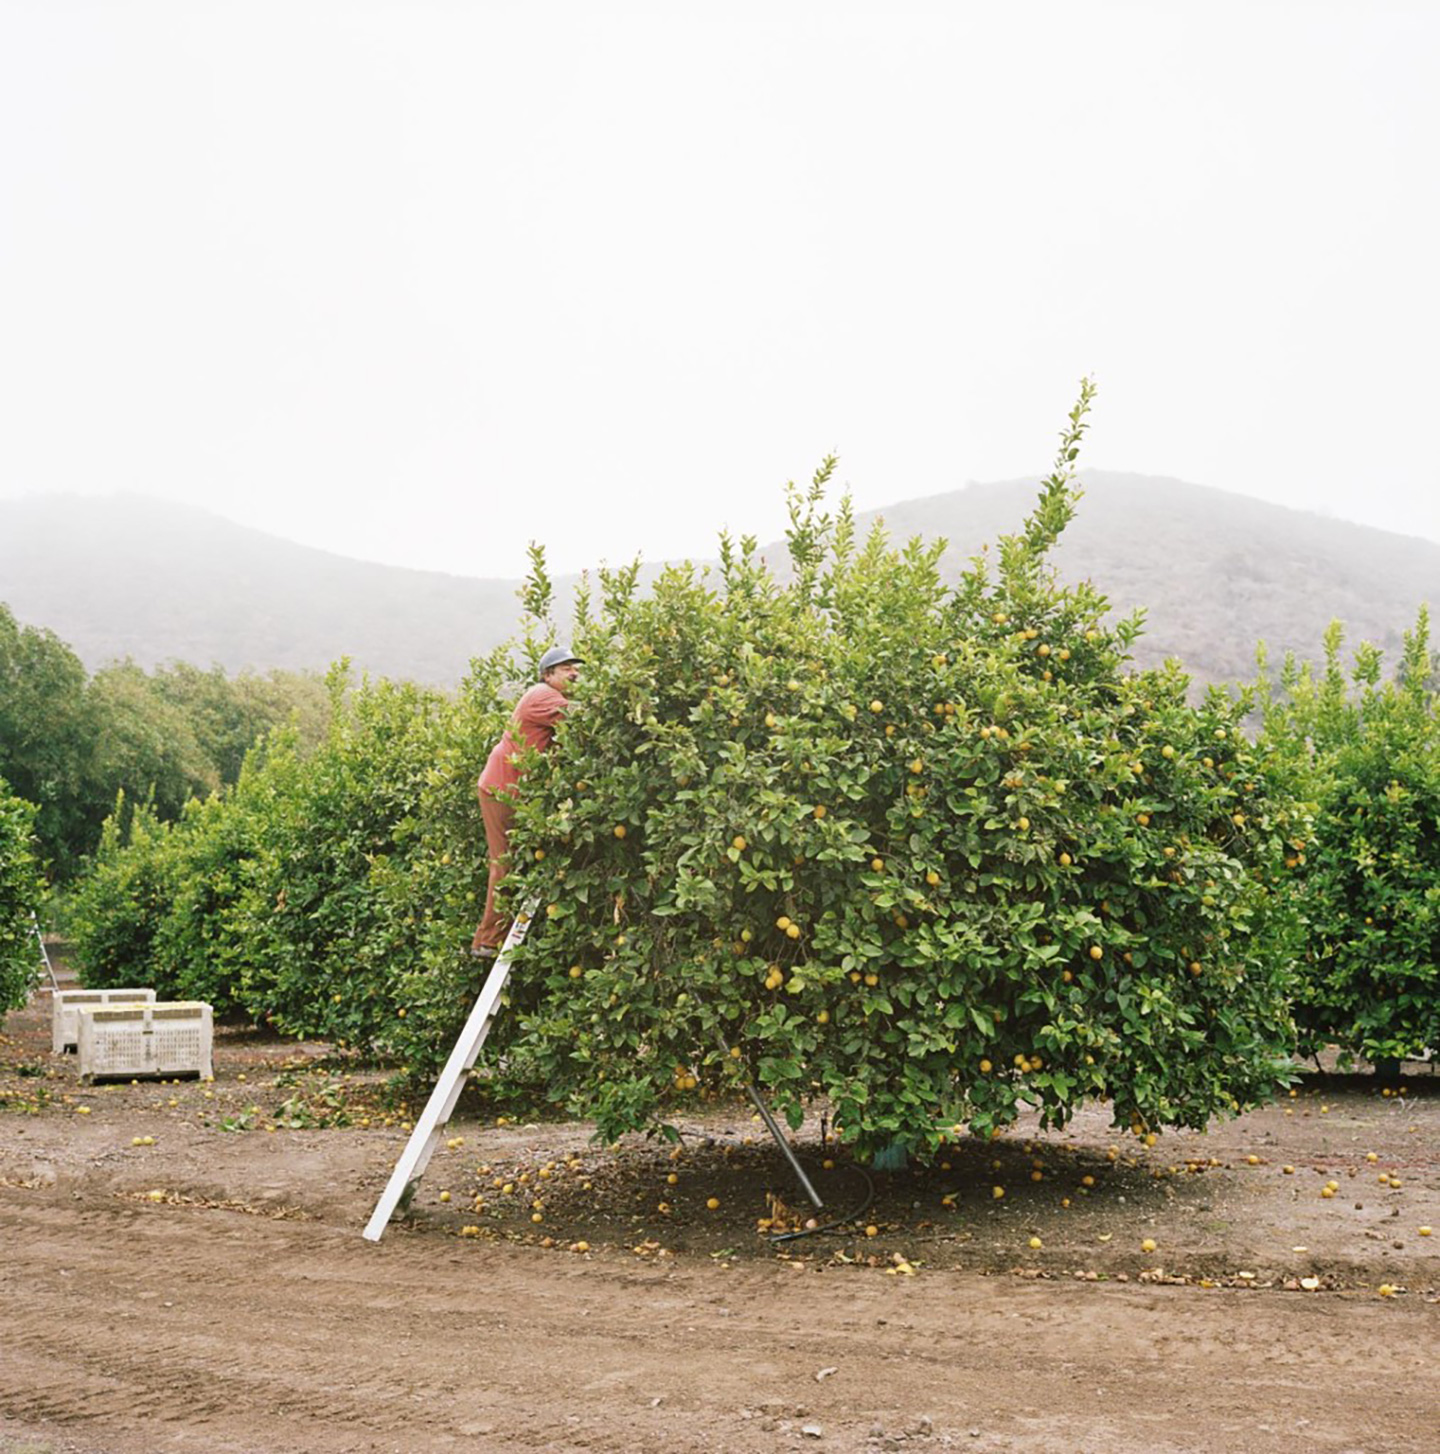 Tom Mayhew's lemon farm